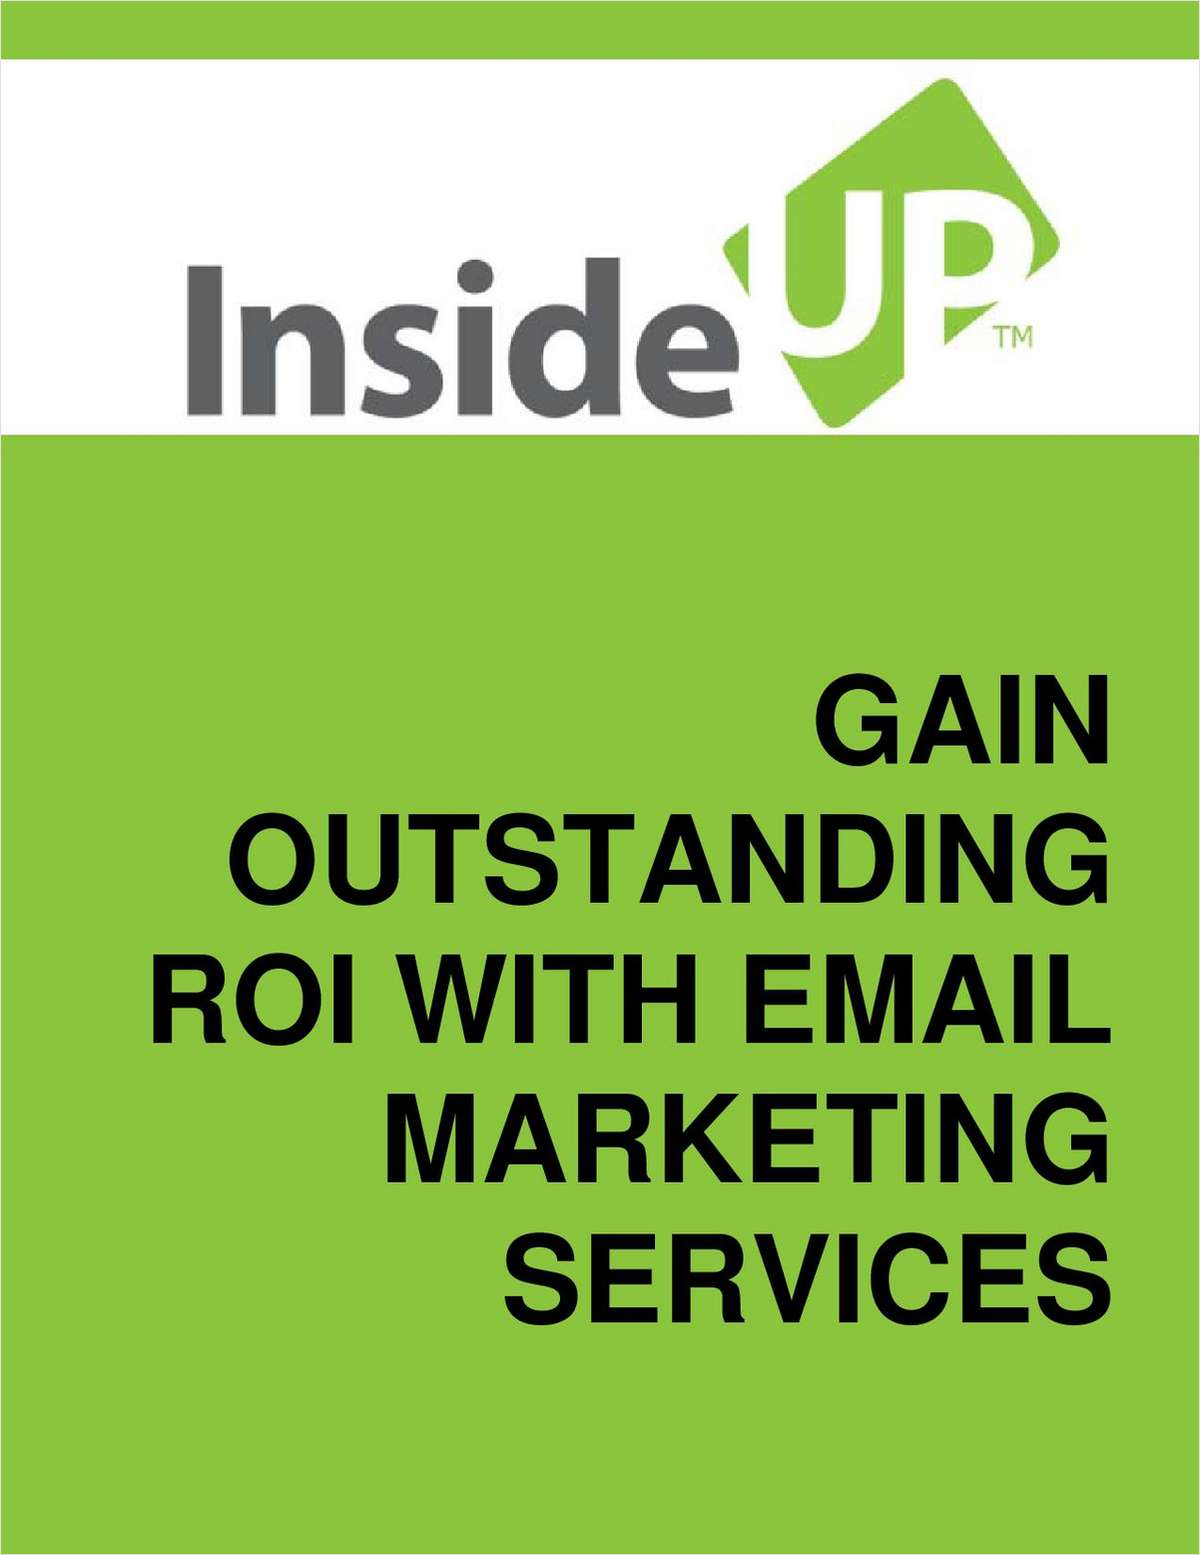 How to Effectively Use E-mail Marketing to Increase ROI